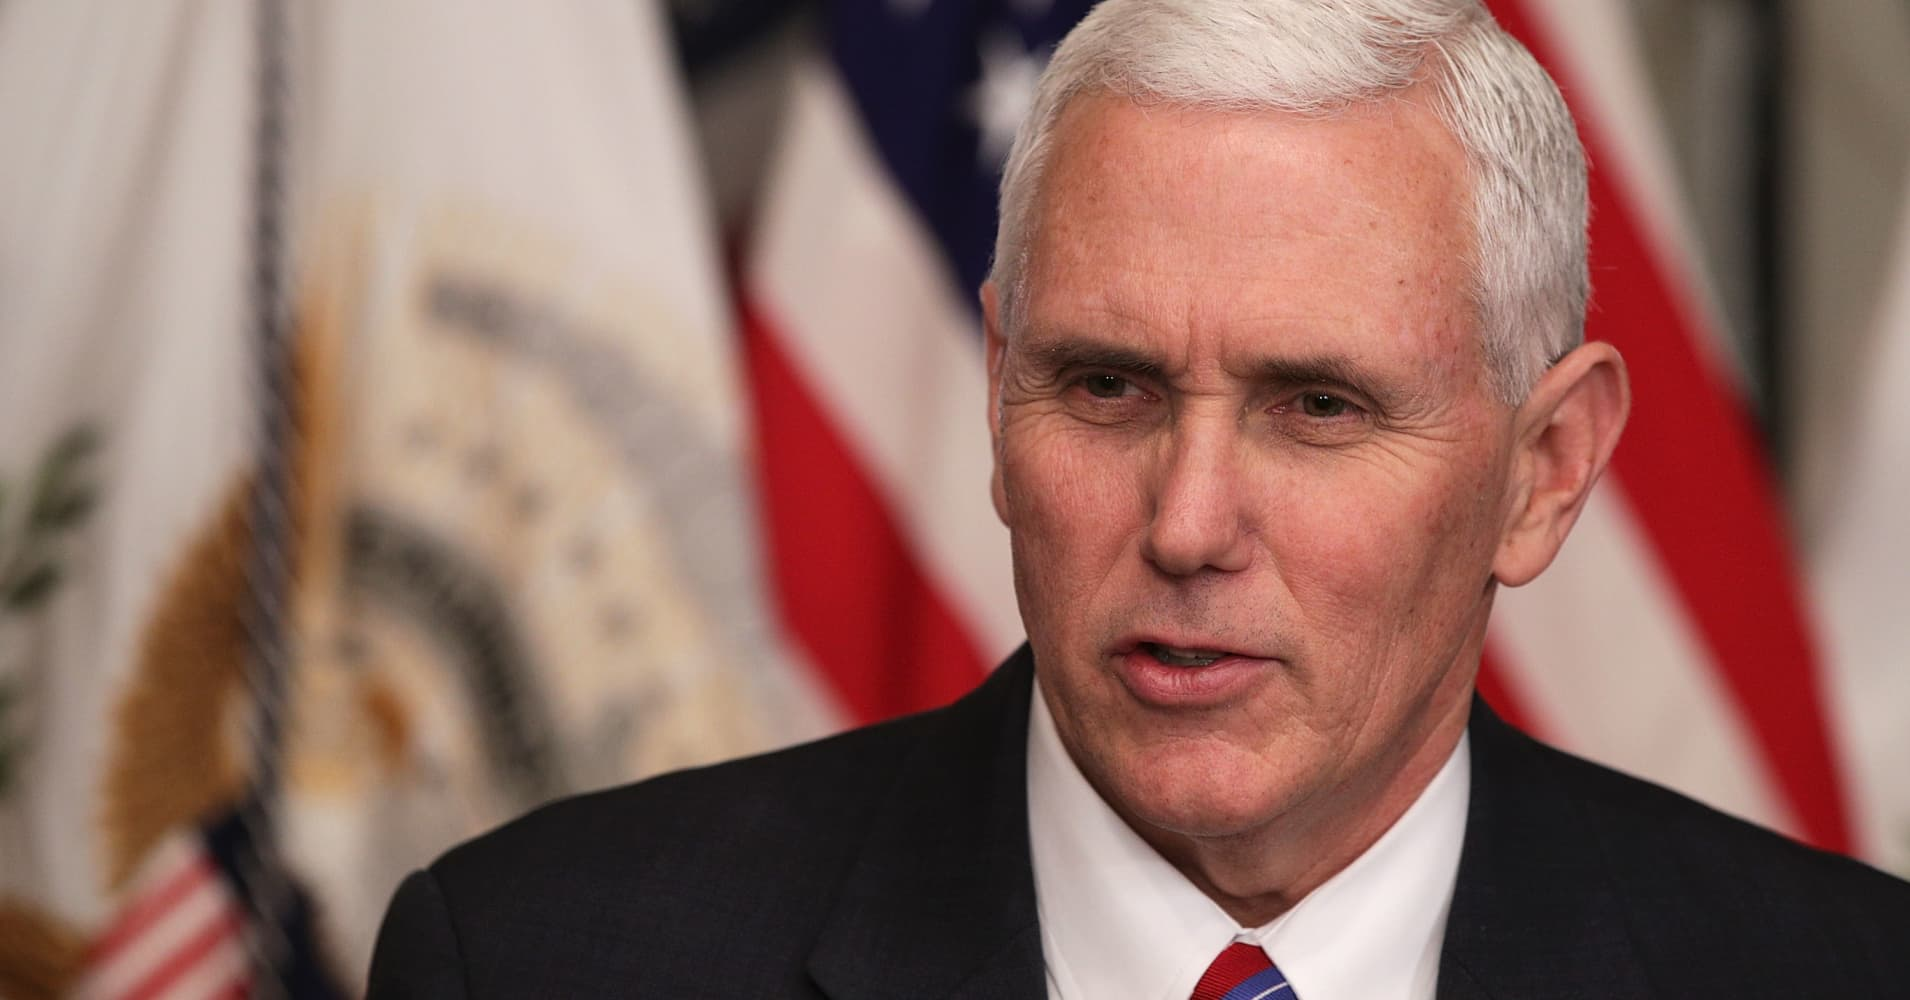 Pence: Trump tax plan could increase deficit 'maybe in the short term'